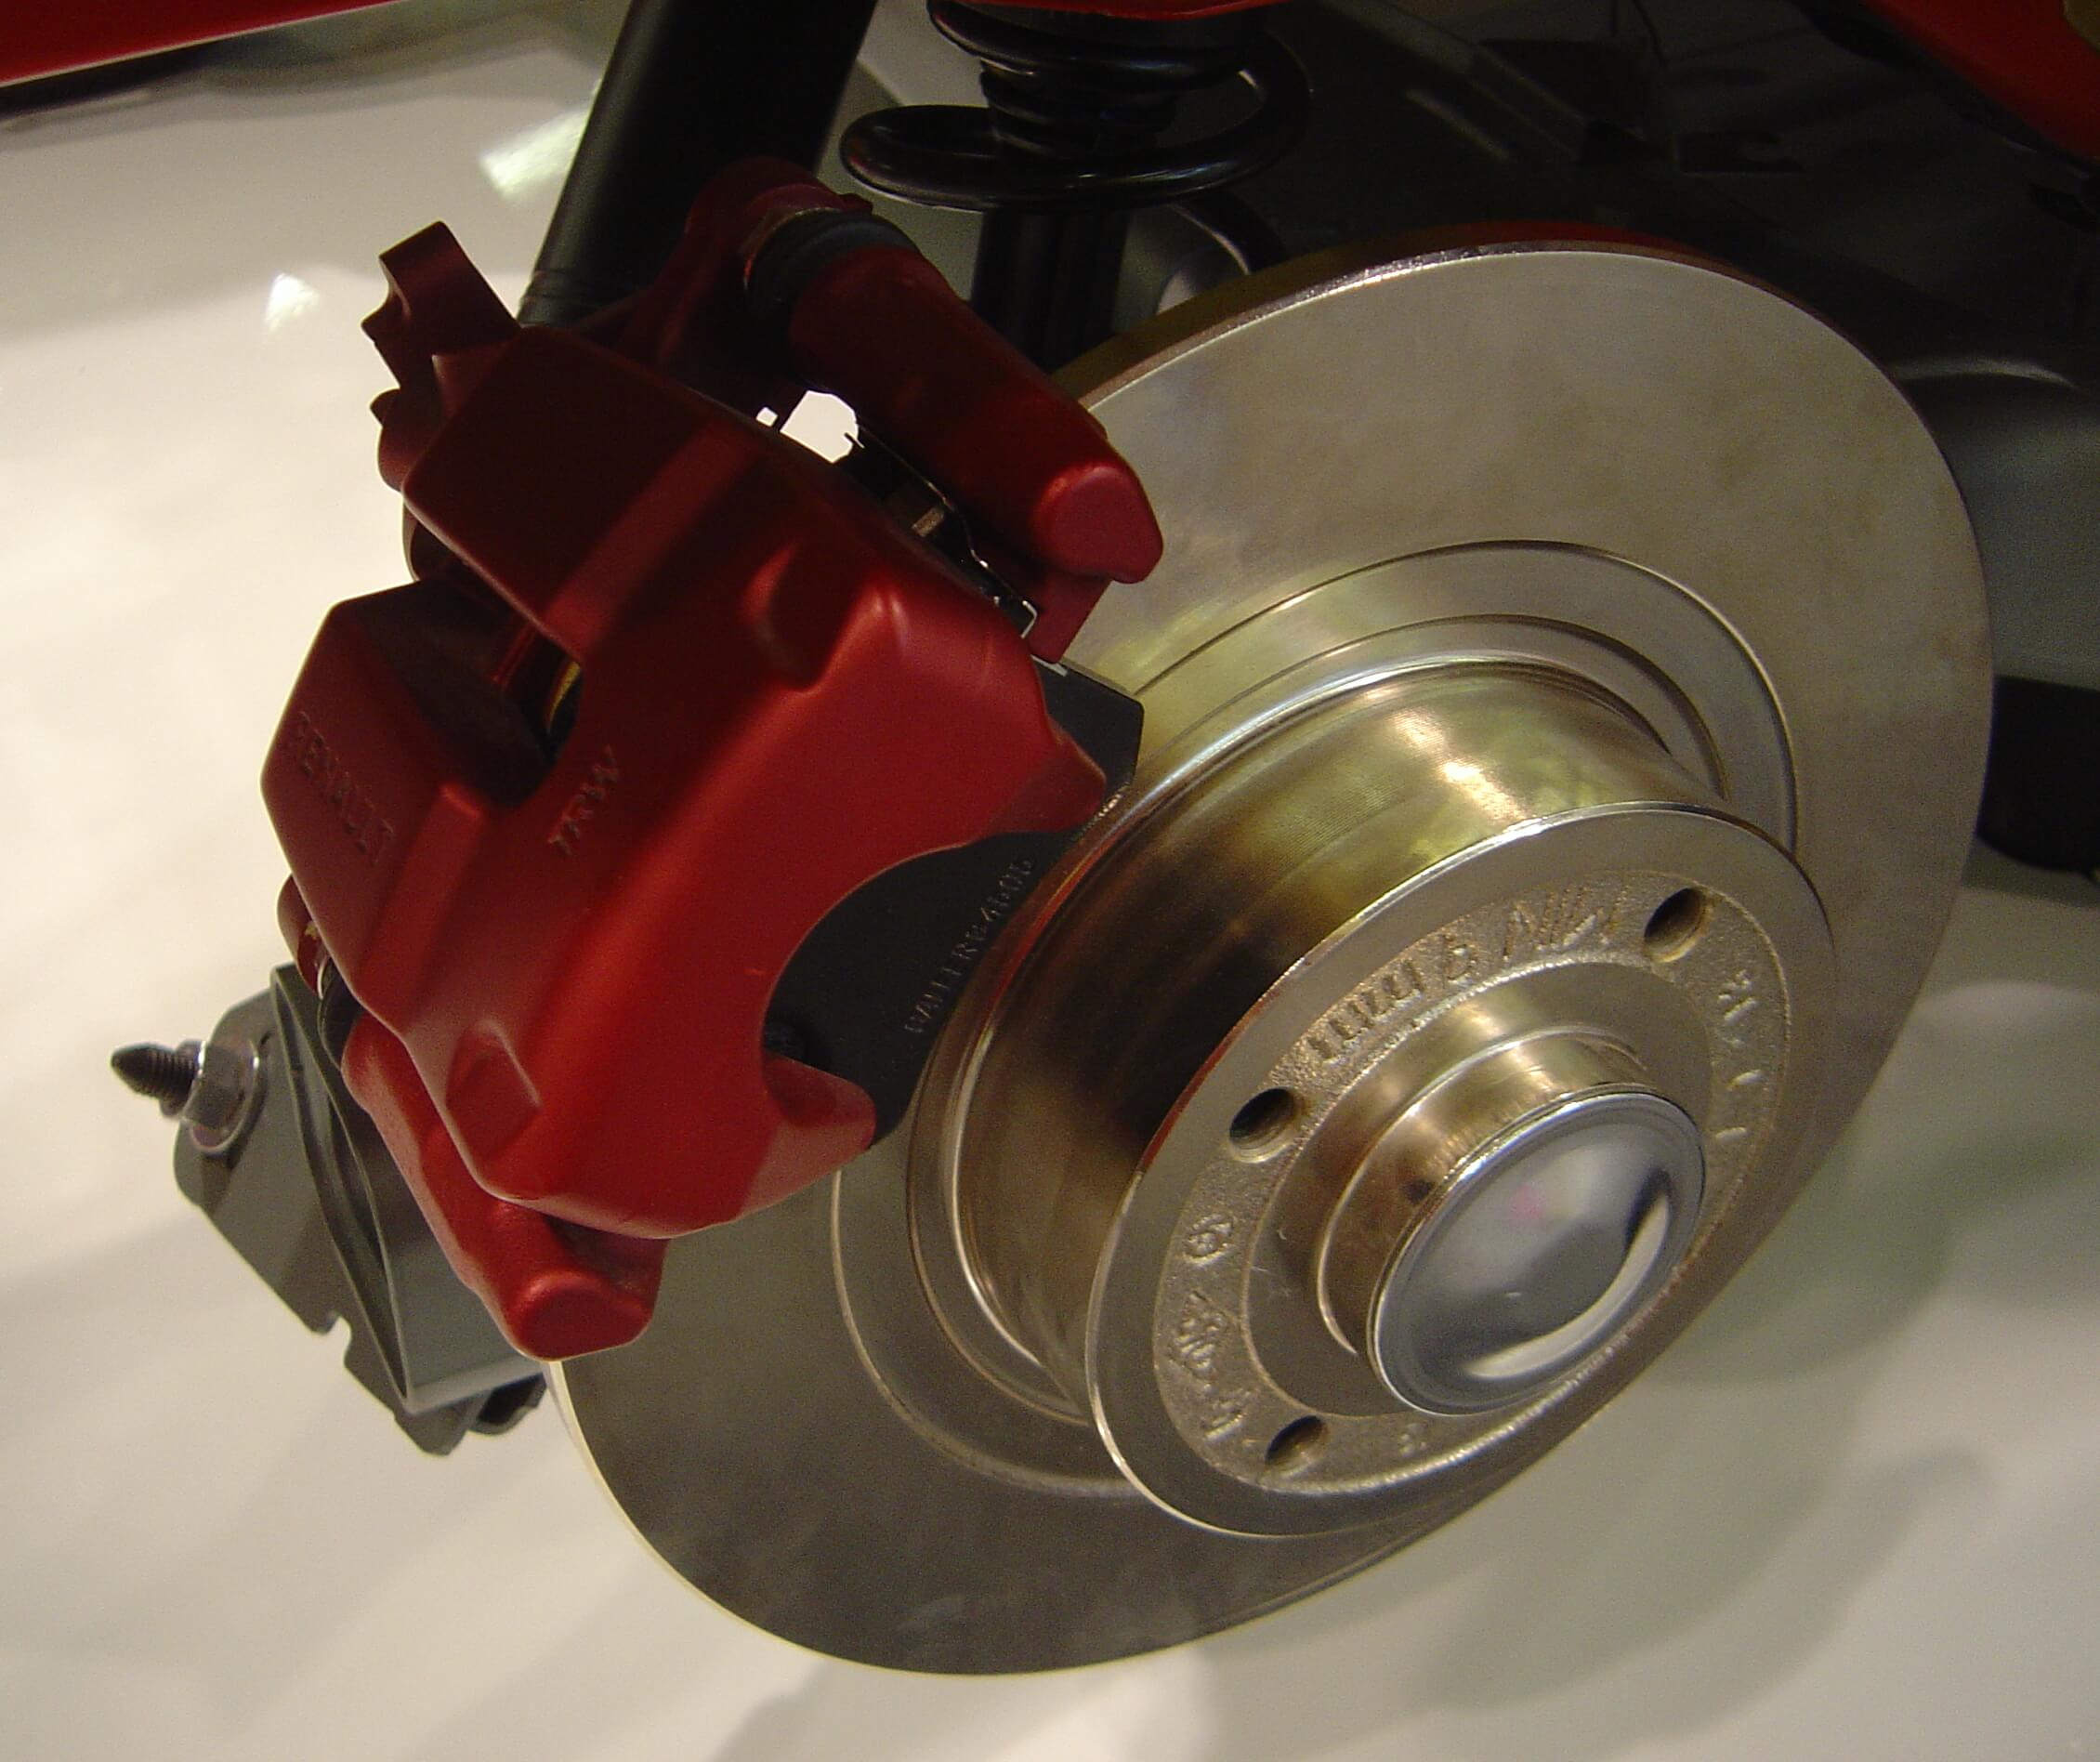 DIFFERENCE BETWEEN BRAKE PADS AND ROTORS